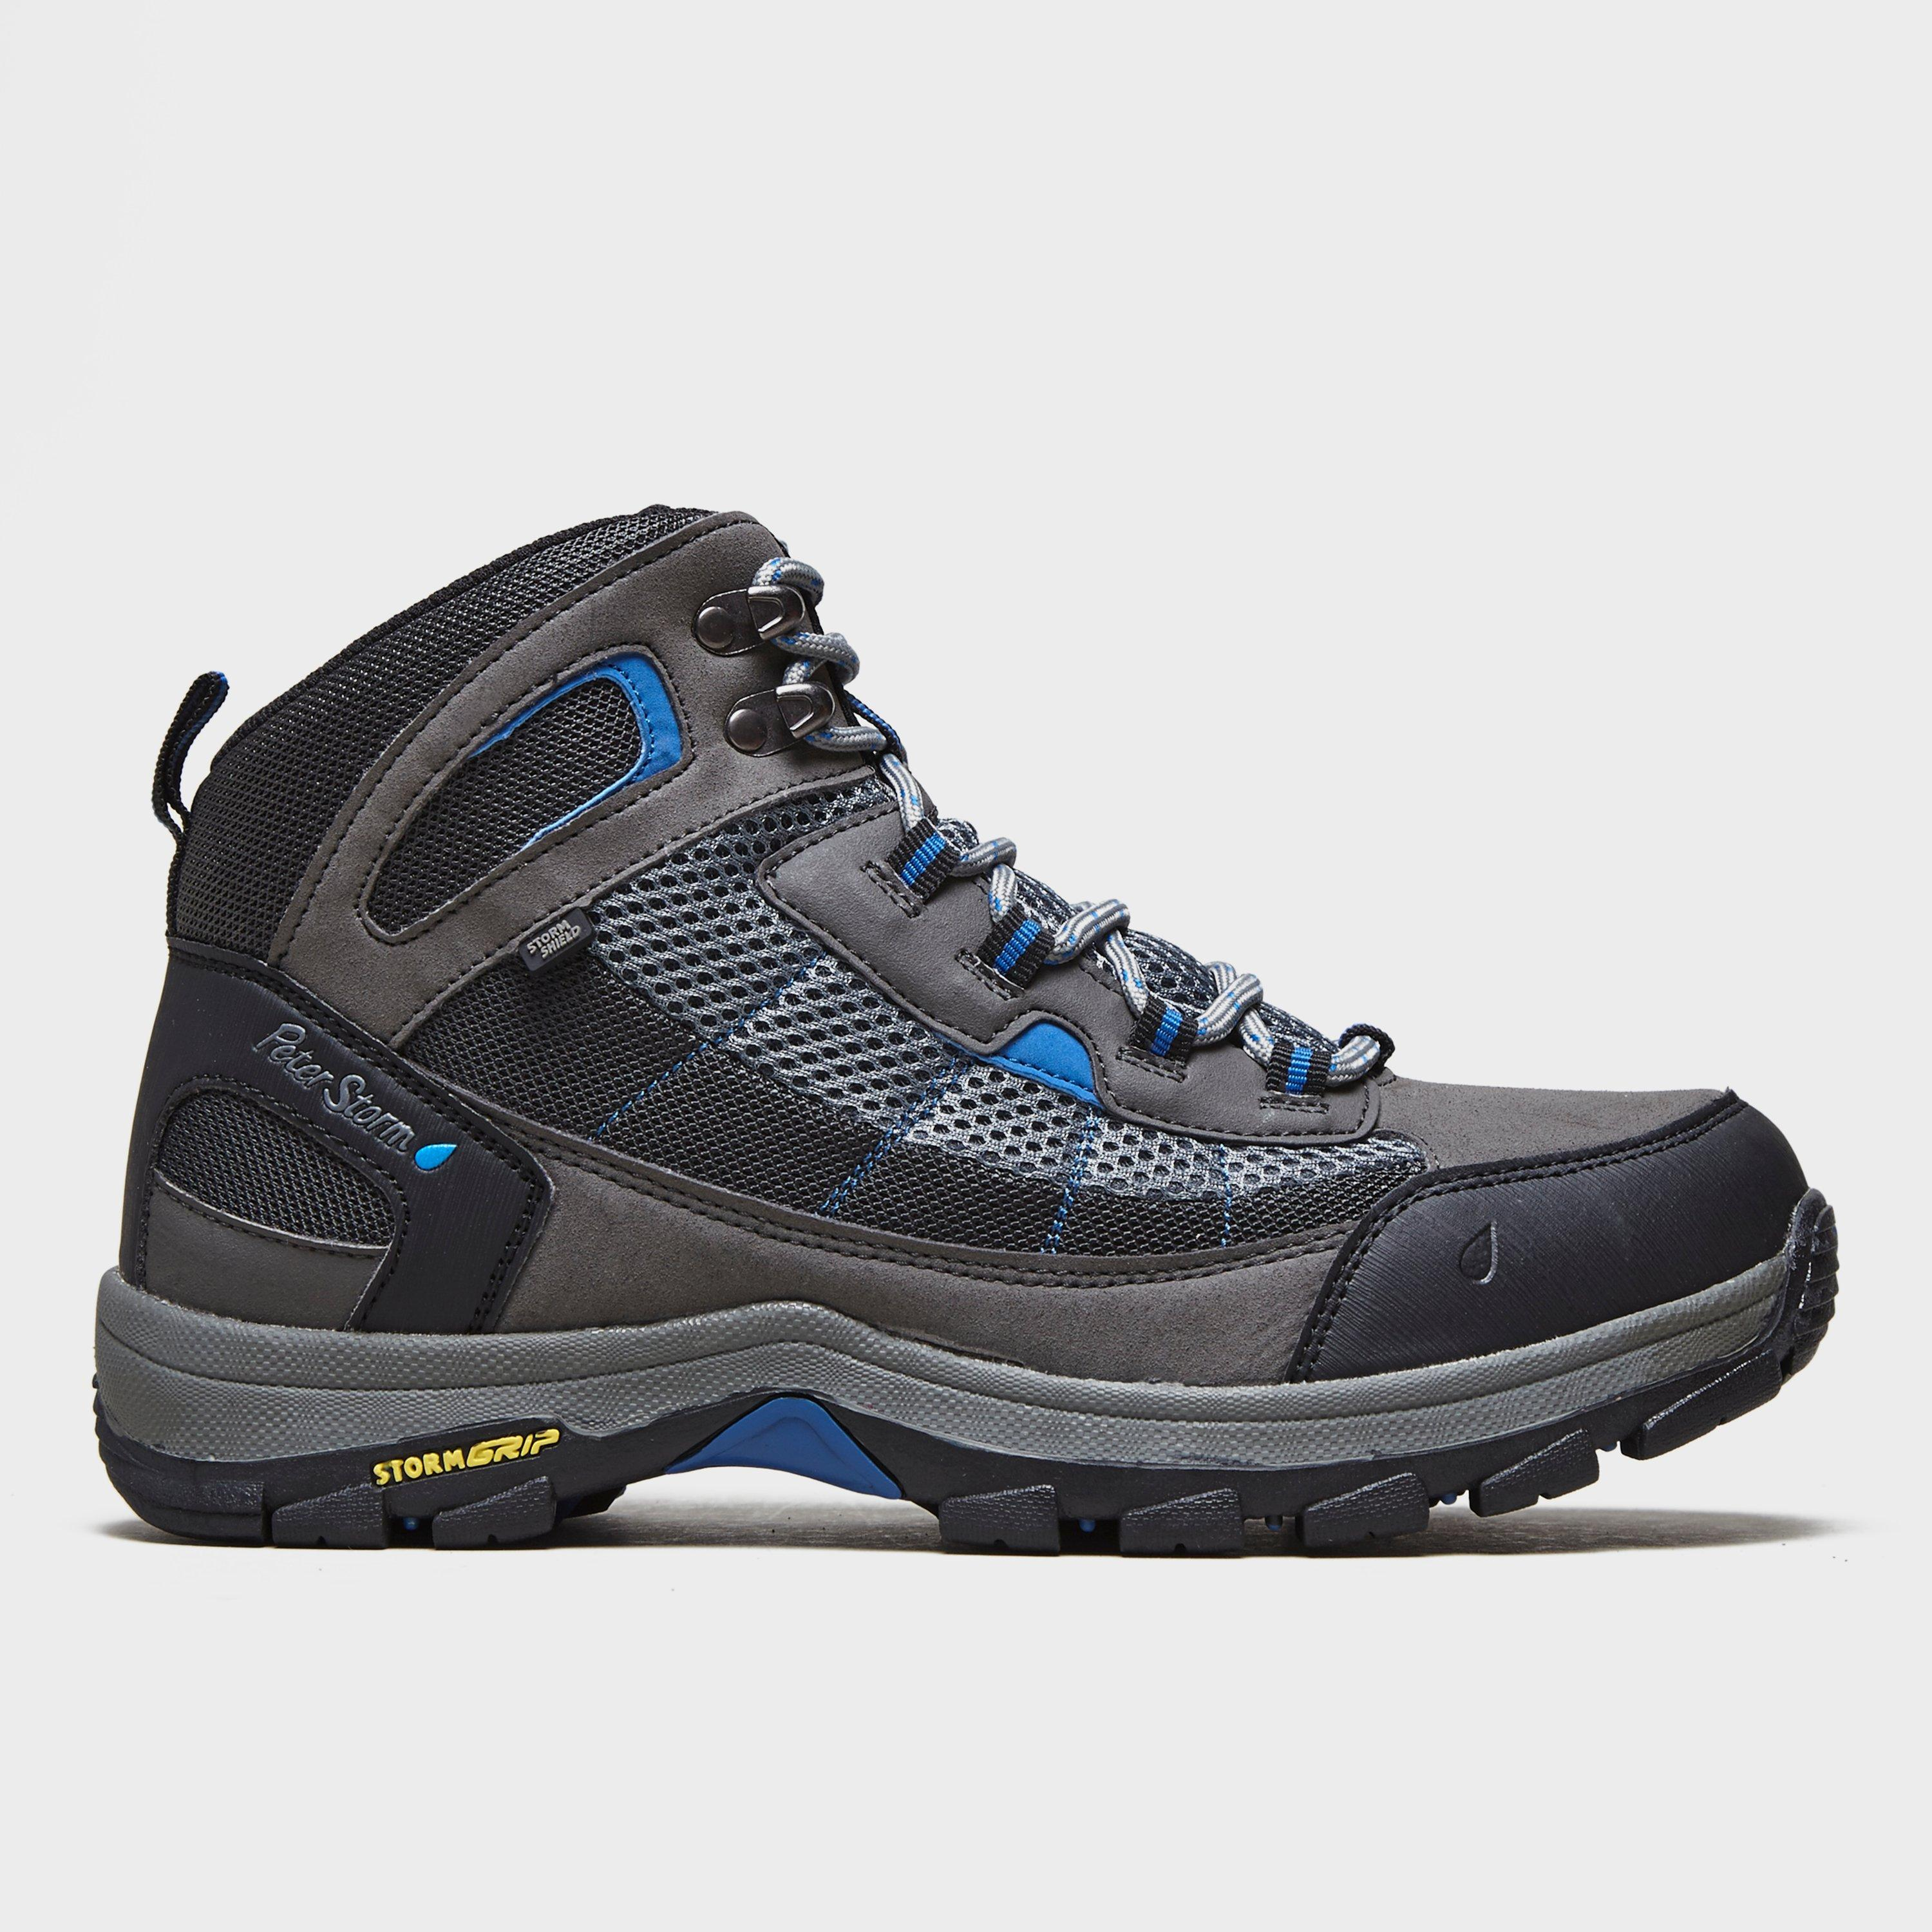 c1bceb8cbb2 Details about New Peter Storm Men's Filey Mid Waterproof Walking Boots